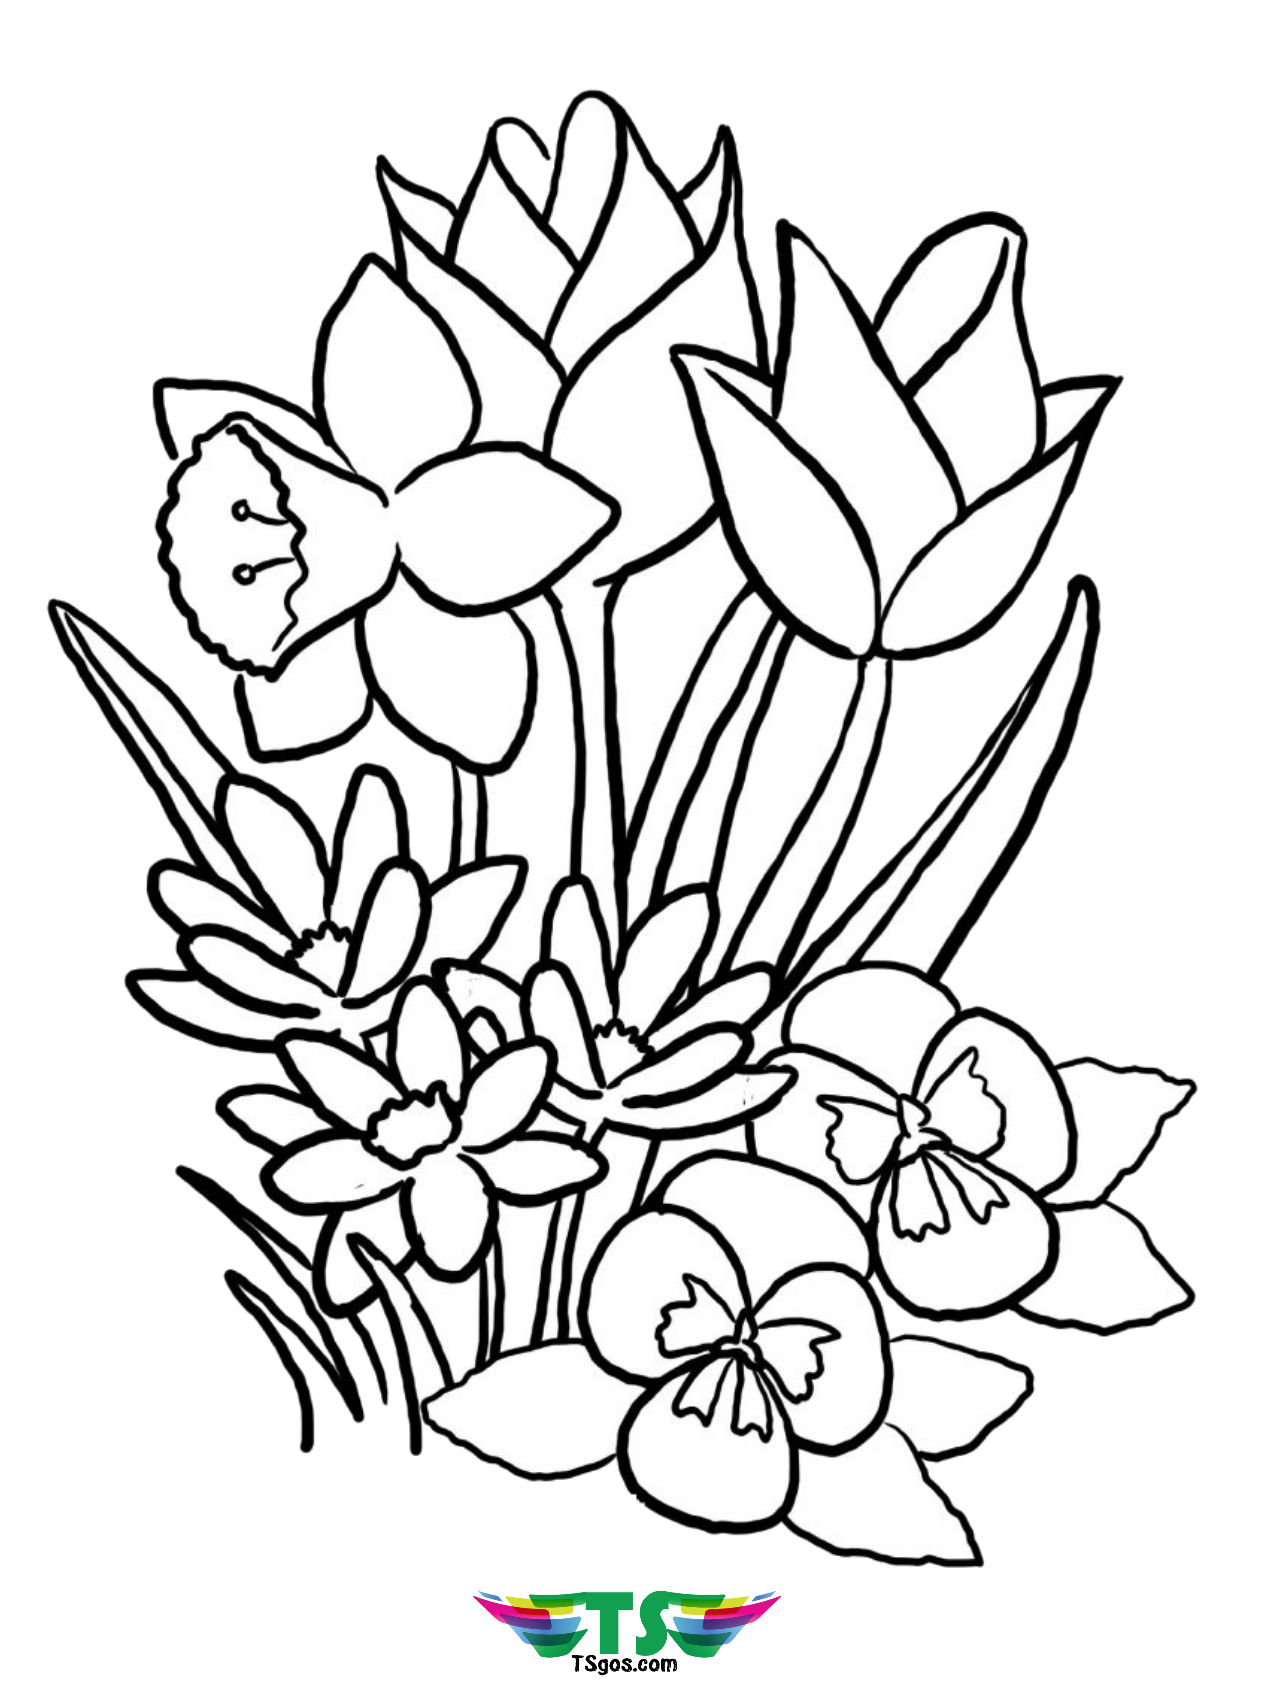 coloring pages flowers printable free rainforest coloring pages flowers coloring pages printable